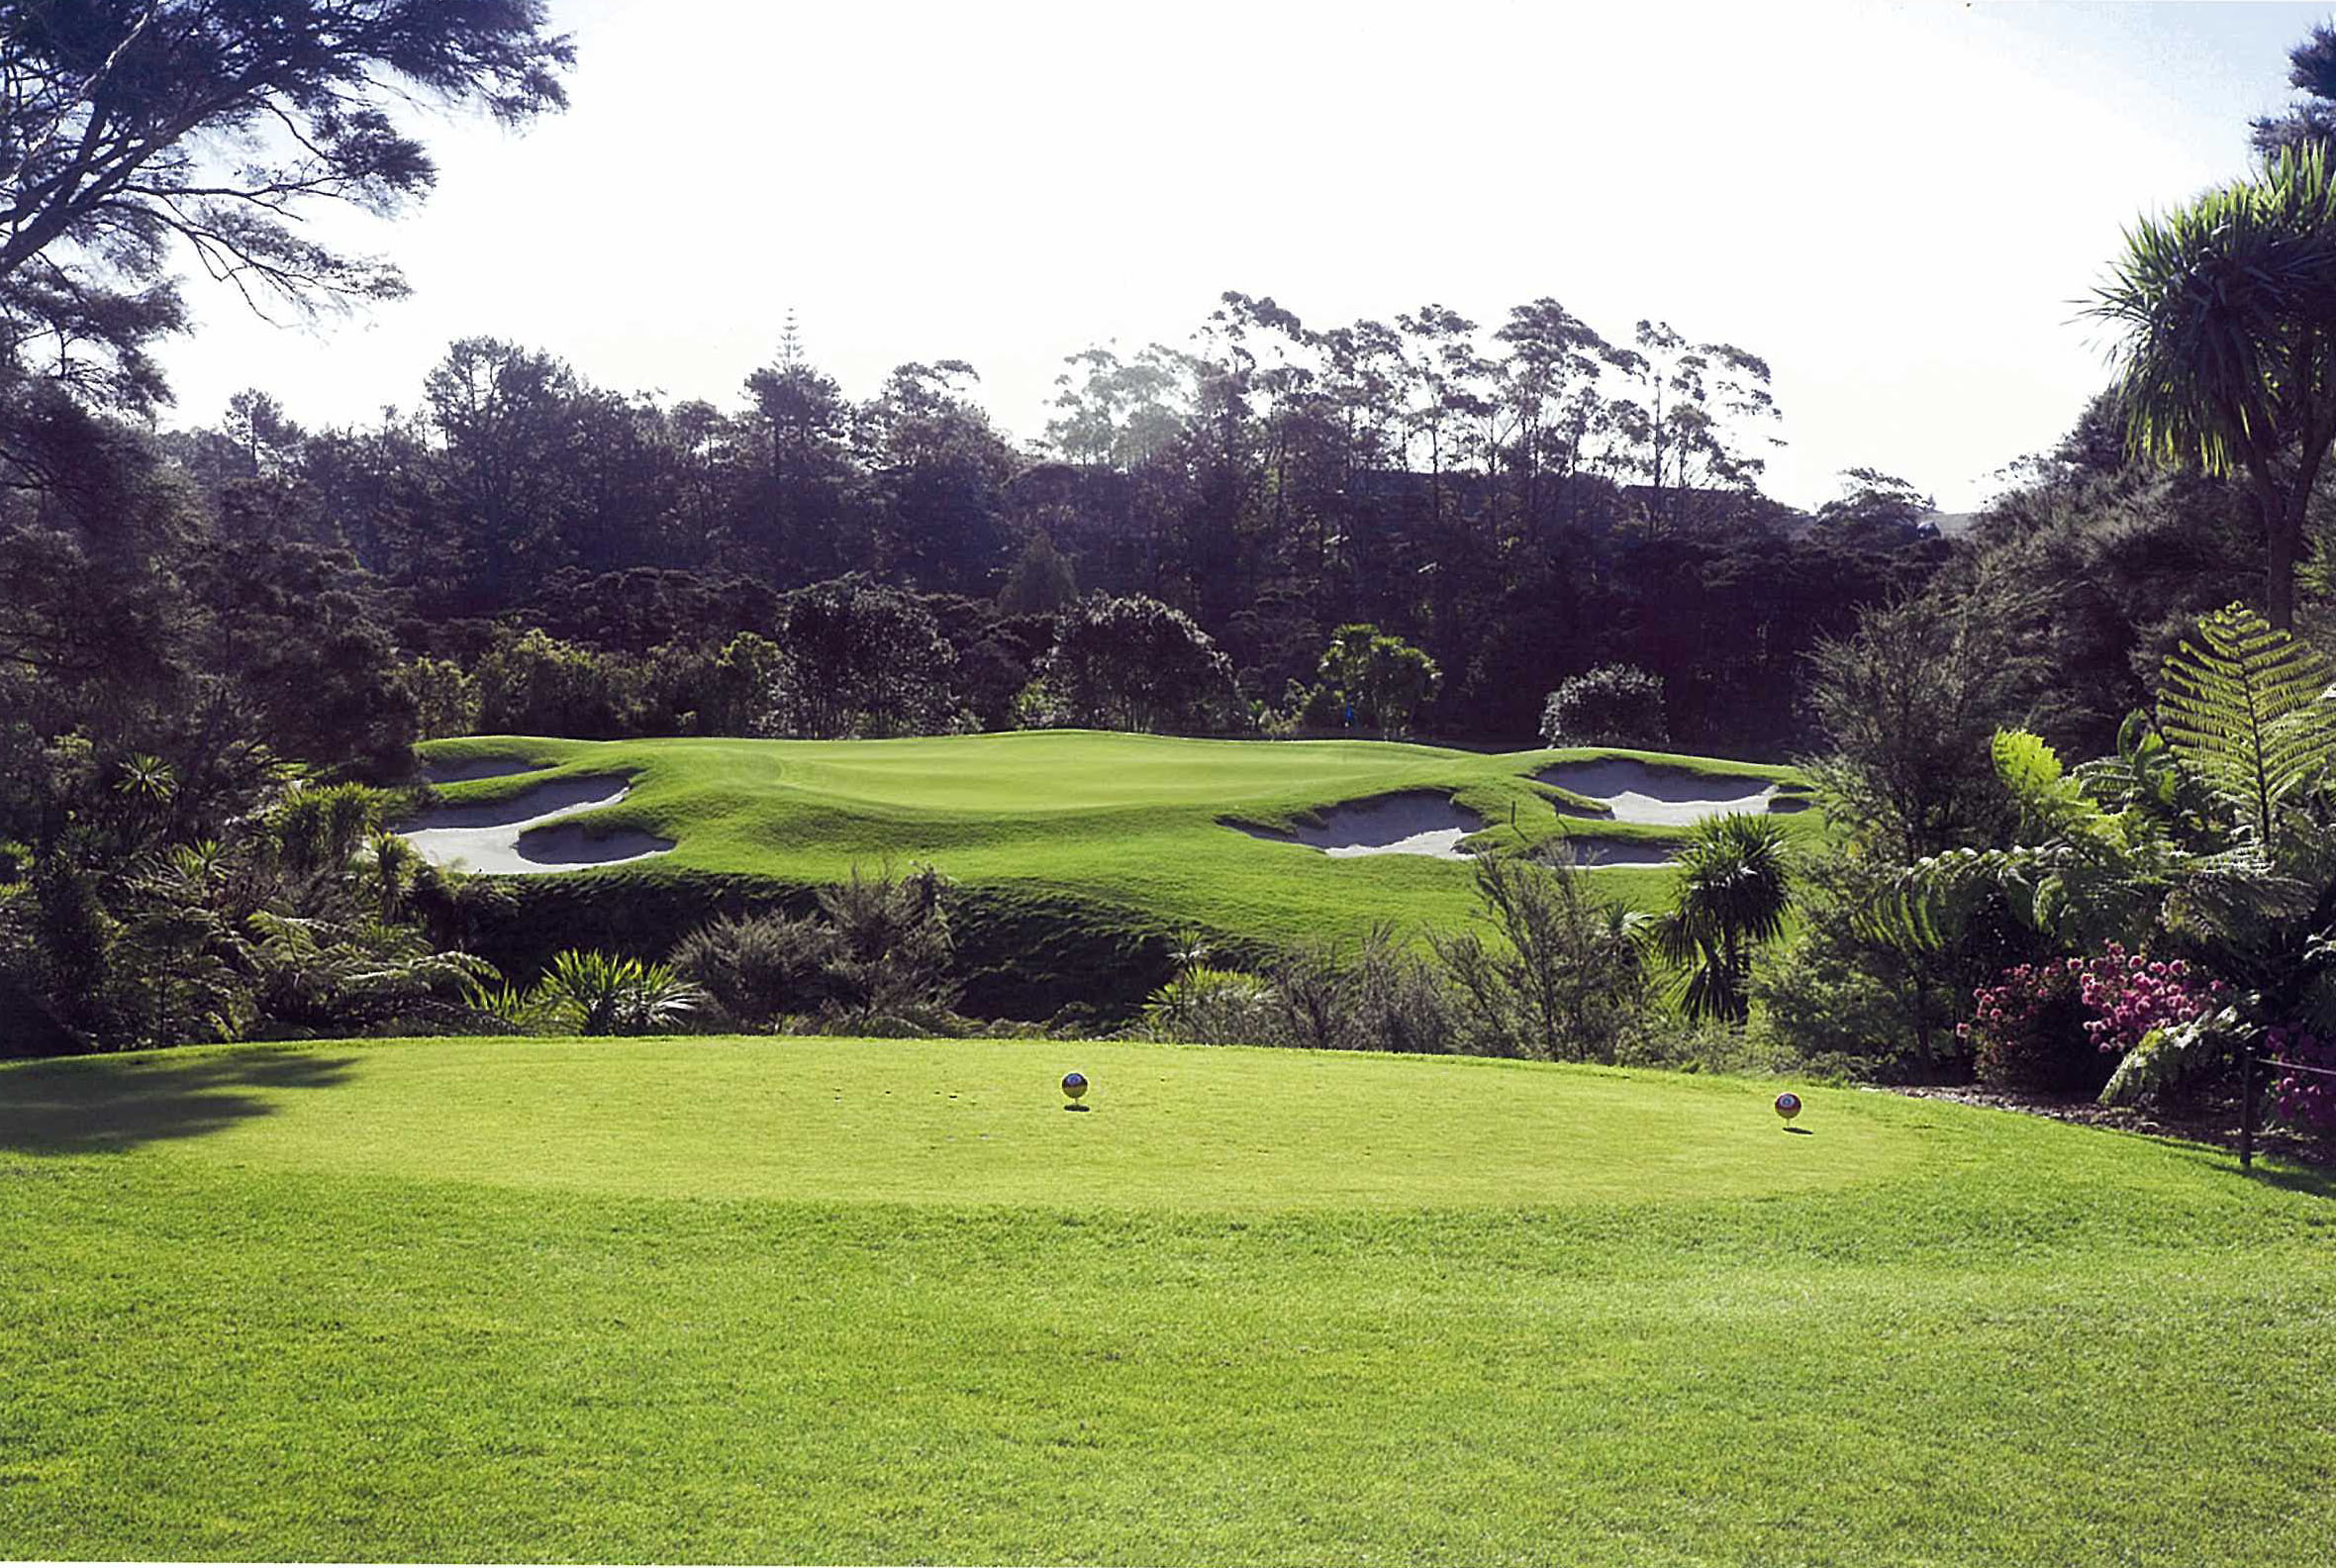 Image overlooking the 14th tee and par-4 at Titirangi Golf Course, New Zealand